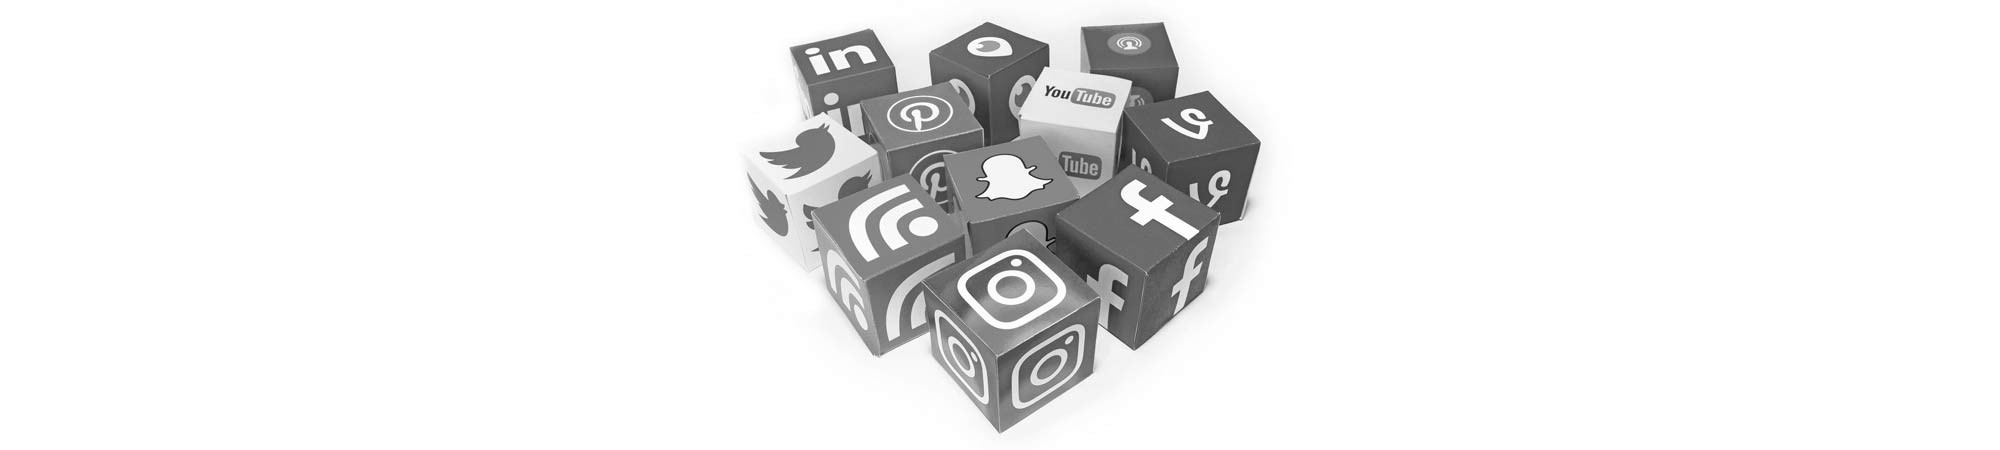 social media training en opleiding